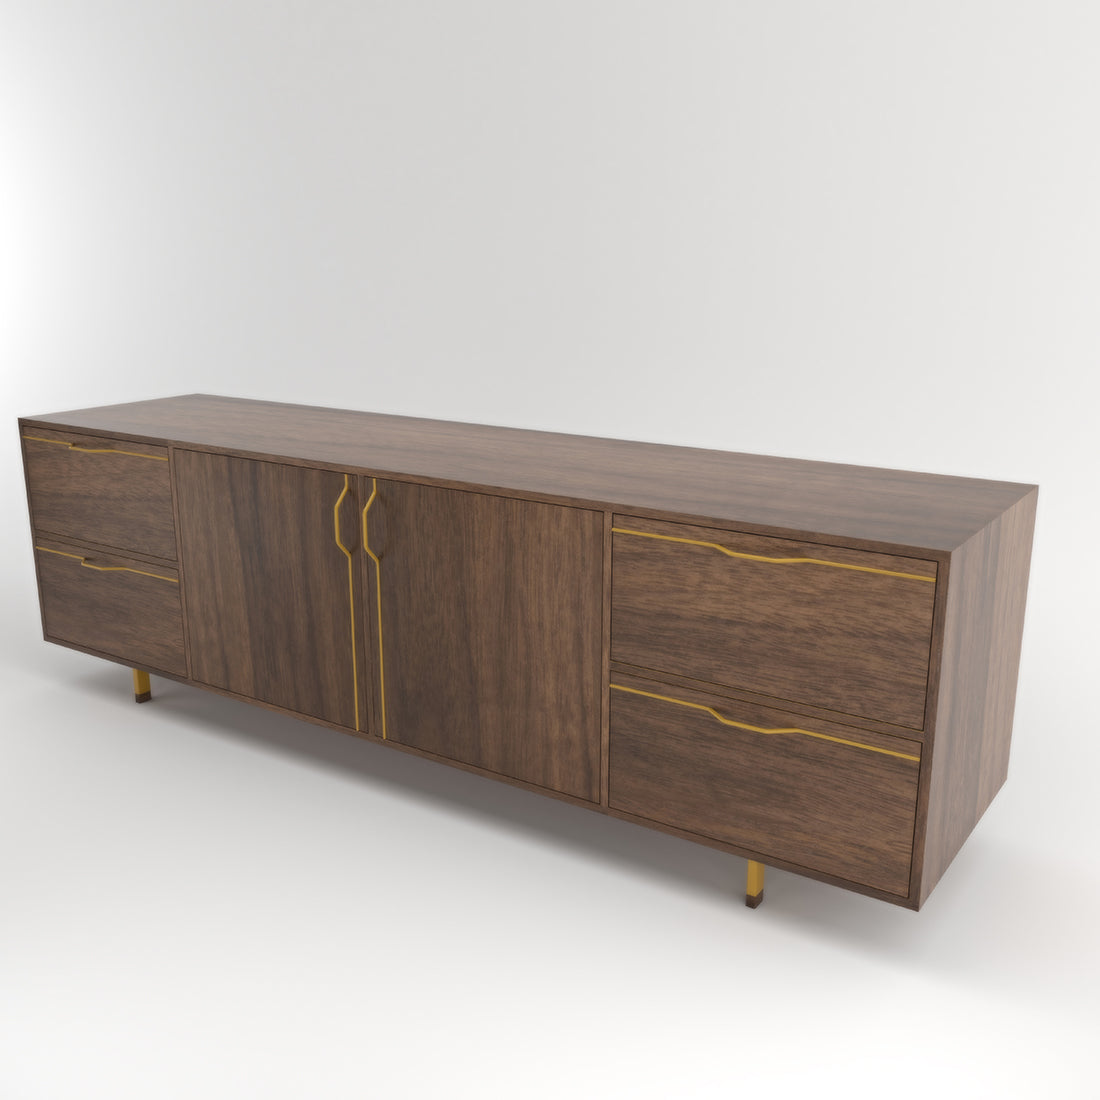 Chapman Walnut Large Credenza Storage Unit w/ Doors & Drawers